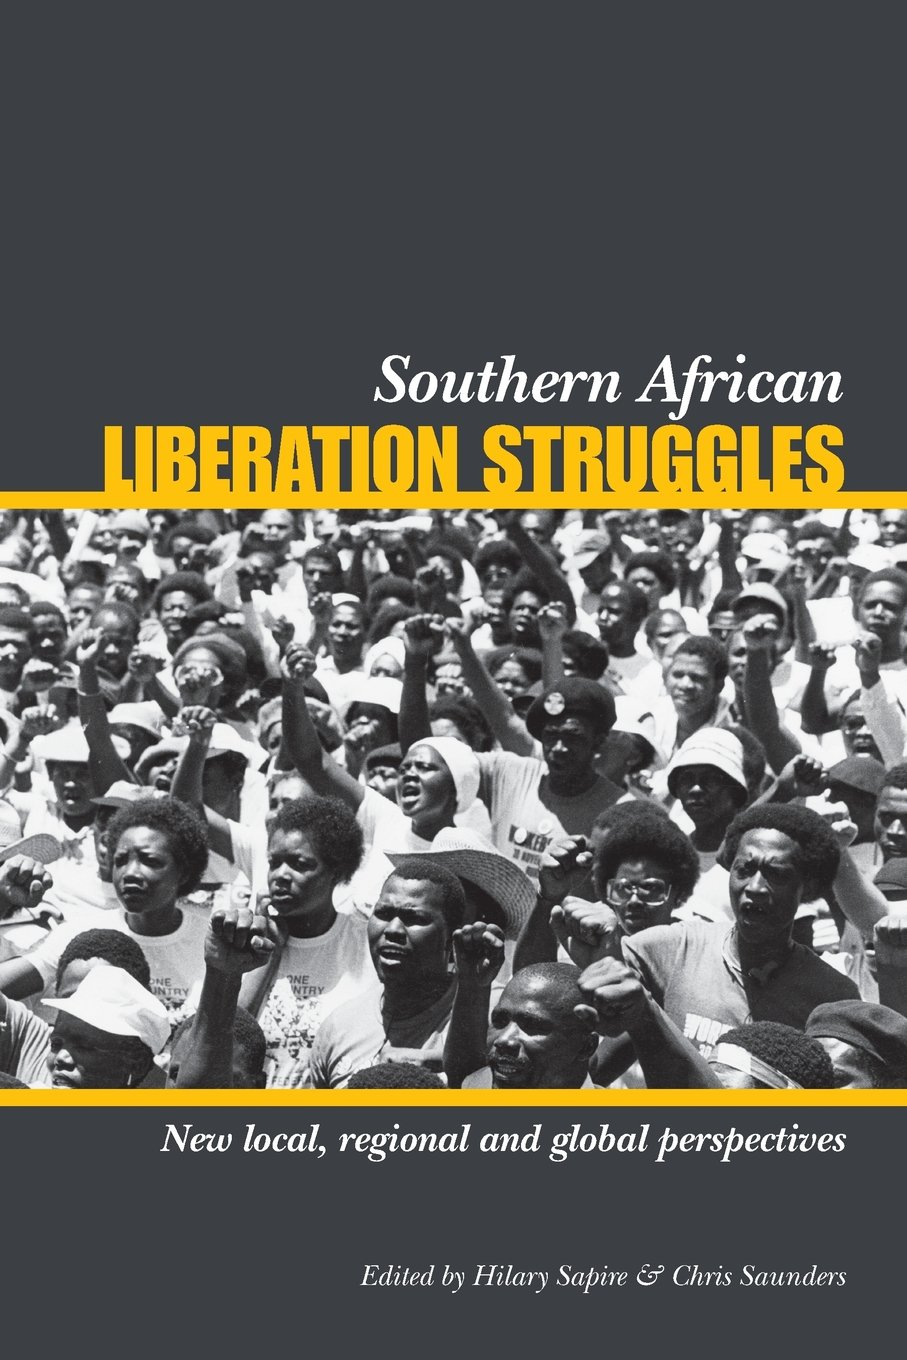 Southern African Liberation Struggles: New Local, Regional and Global  Perspectives: Amazon.co.uk: Hilary Sapire, Chris Saunders: 9781919895932:  Books